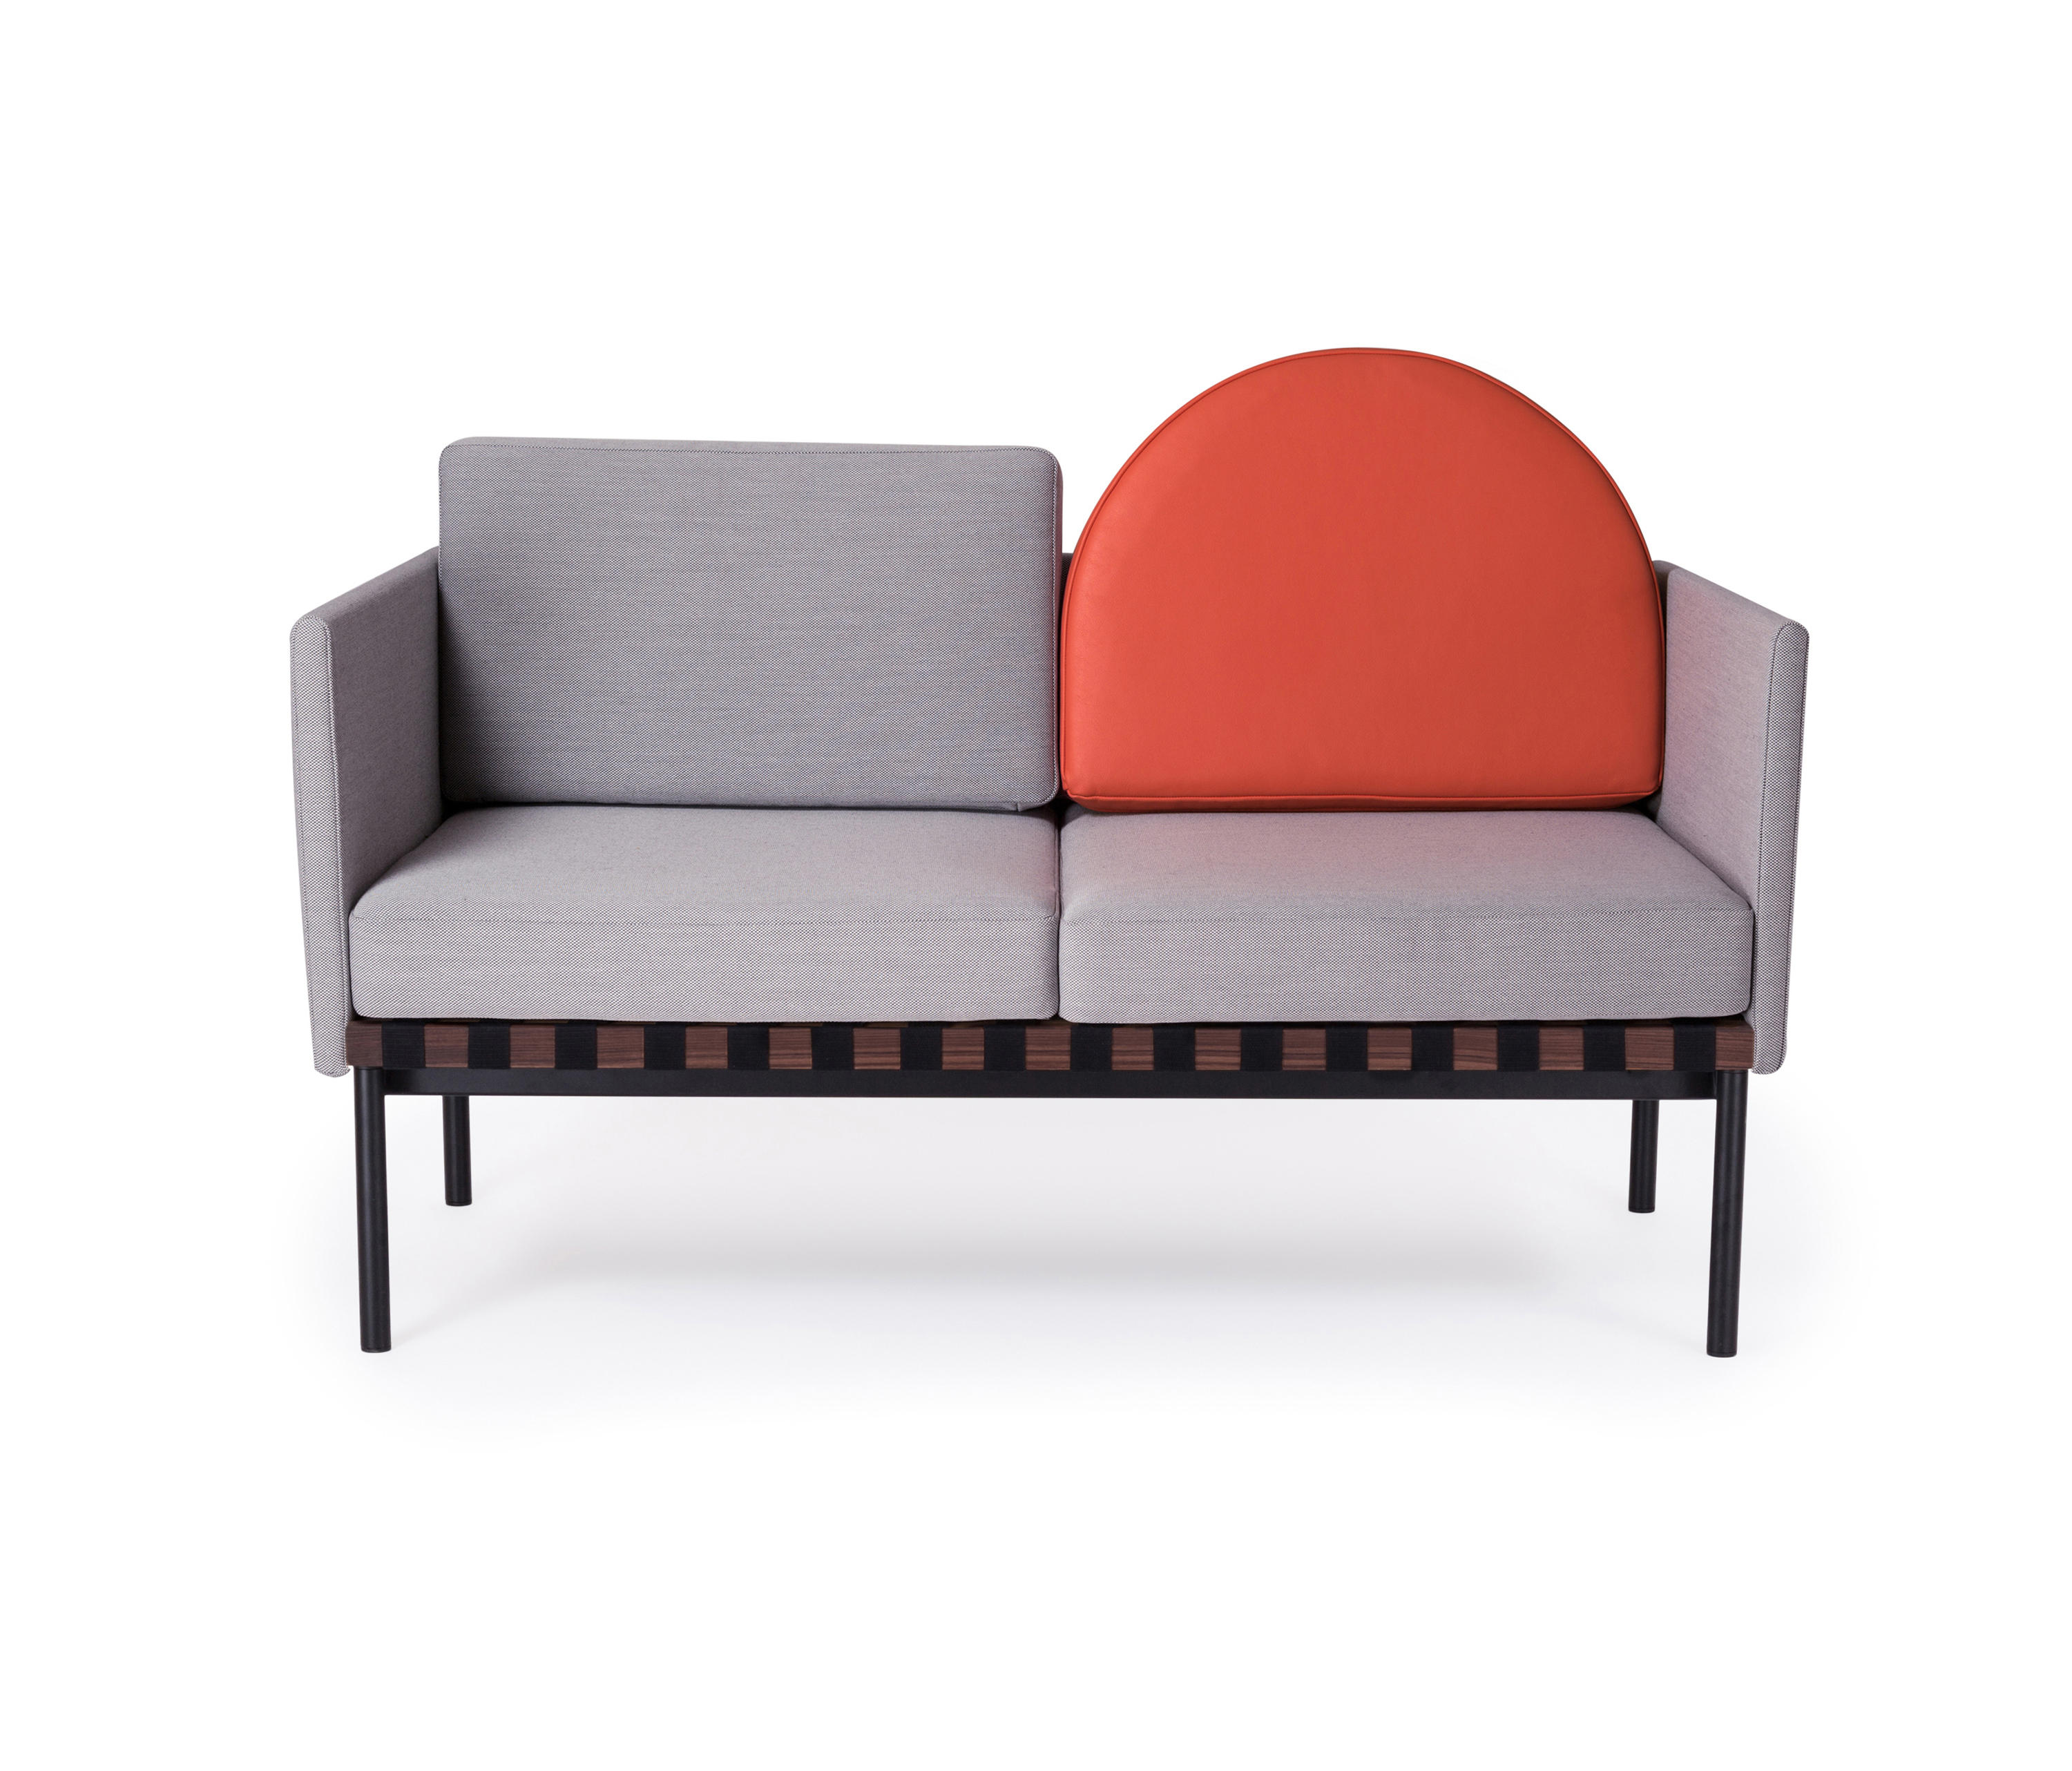 grid sofa sofas from petite friture architonic. Black Bedroom Furniture Sets. Home Design Ideas